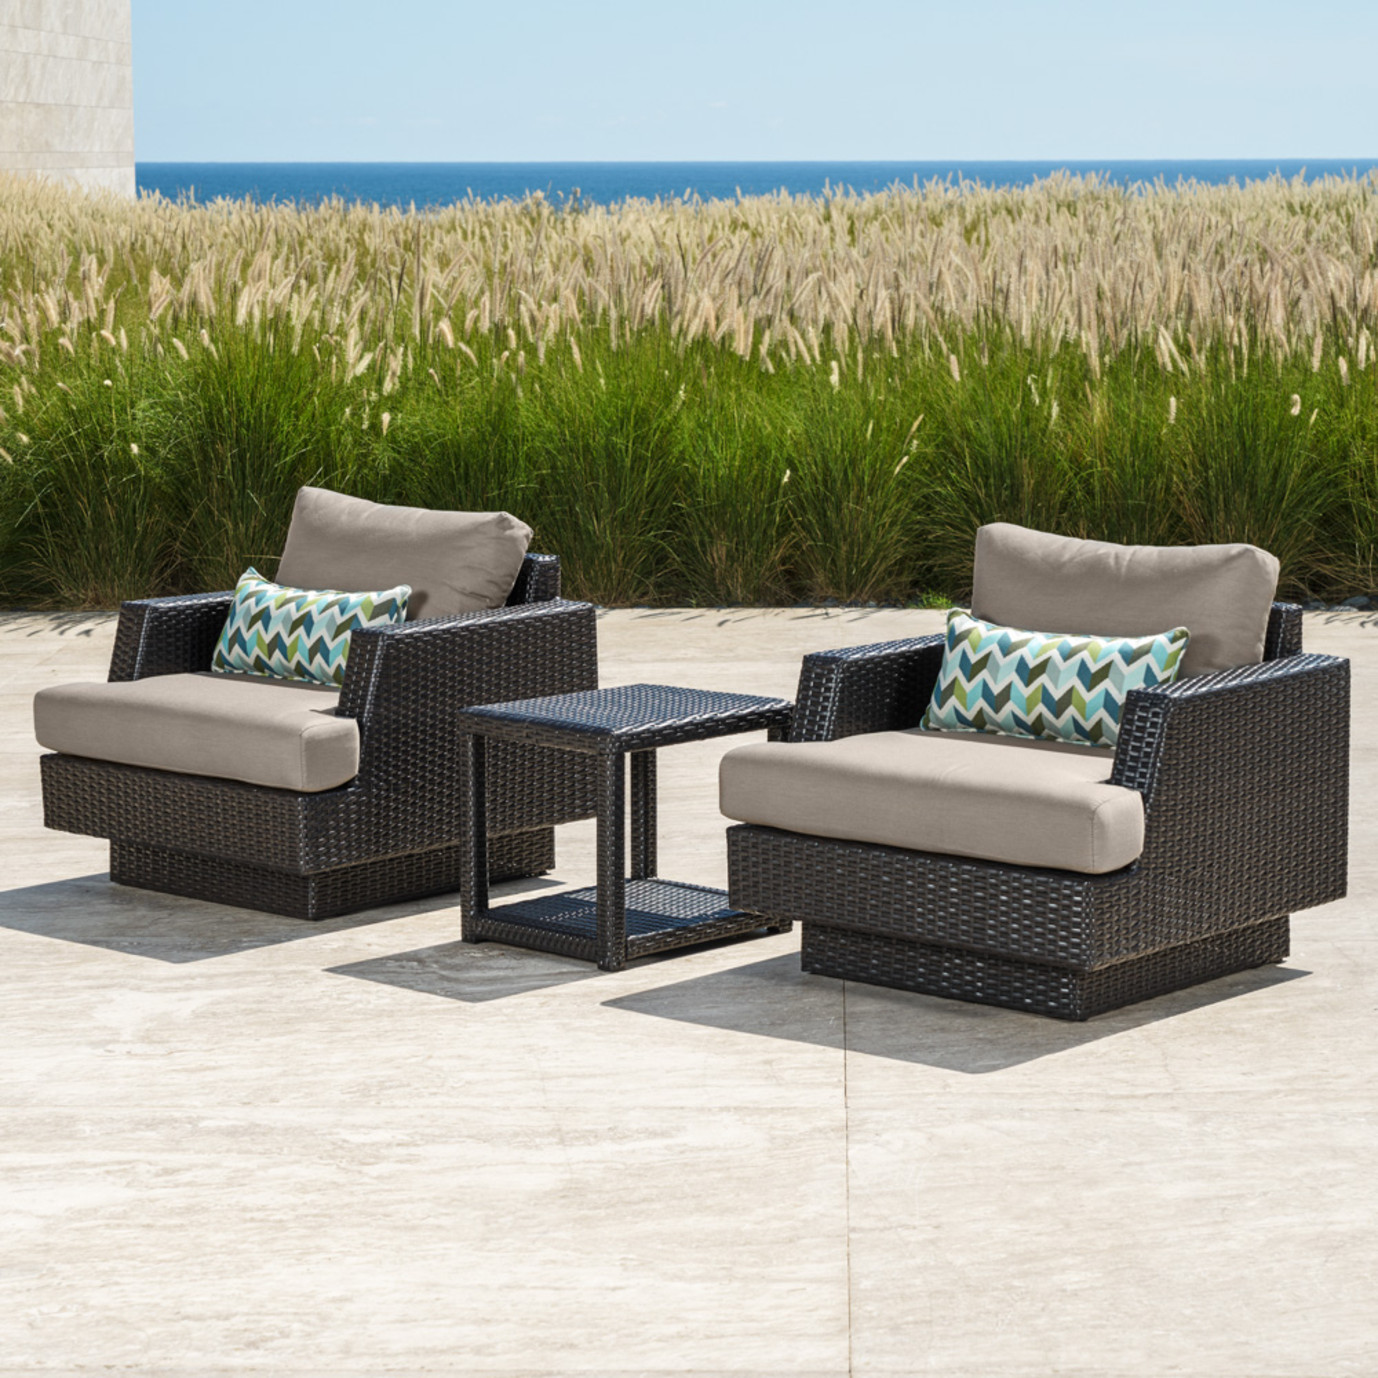 Portofino® Comfort Club Chairs with Side Table